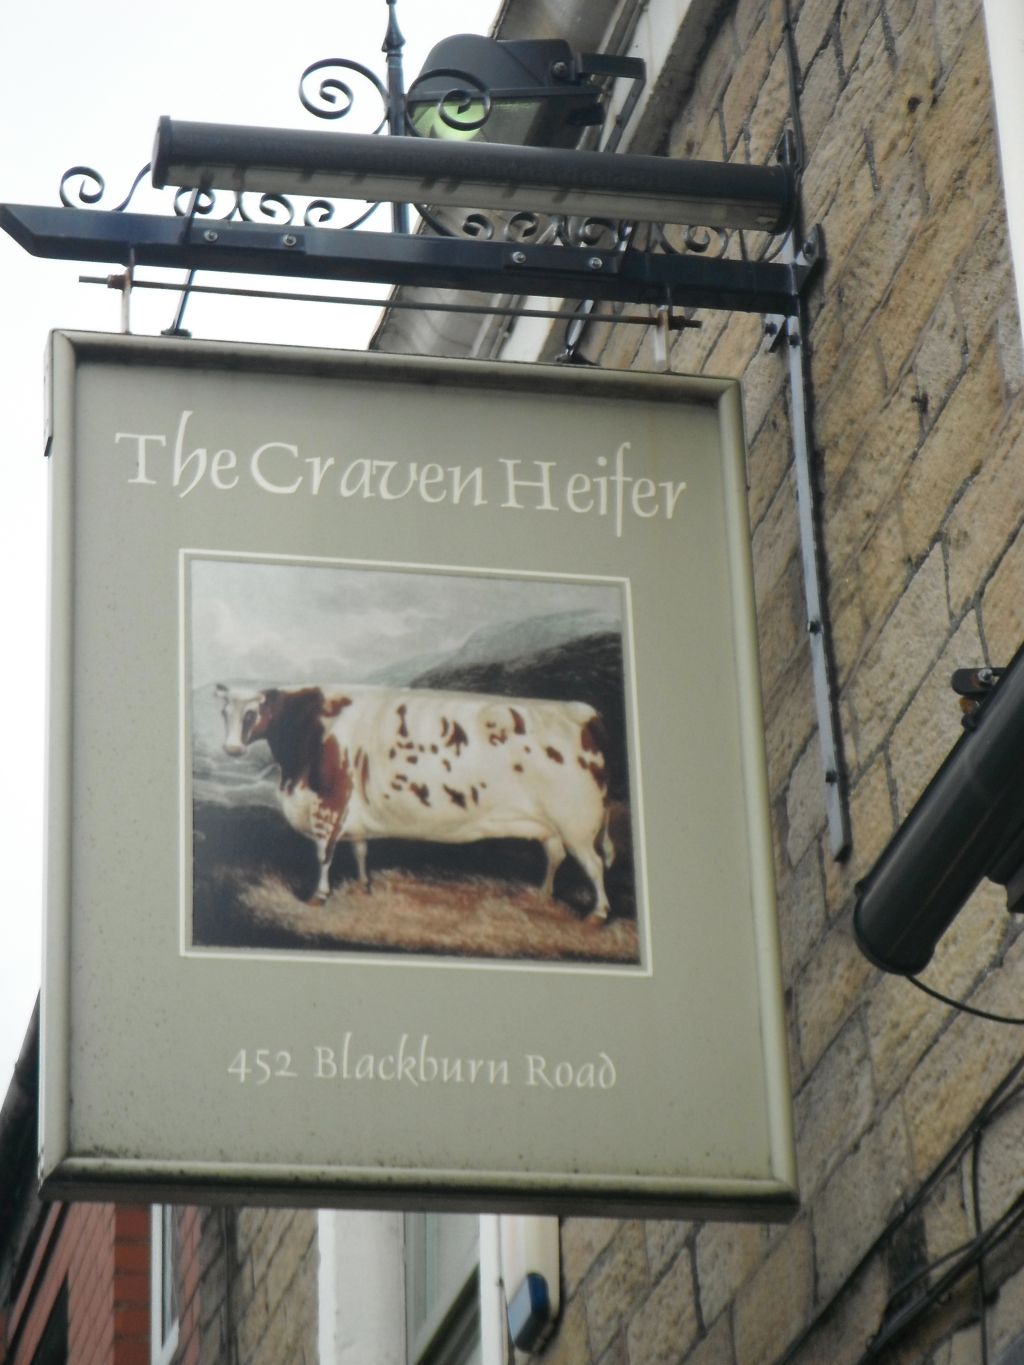 Photo taken by me - The Craven Heifer pub sign, Halliwell Bolton Lancashire